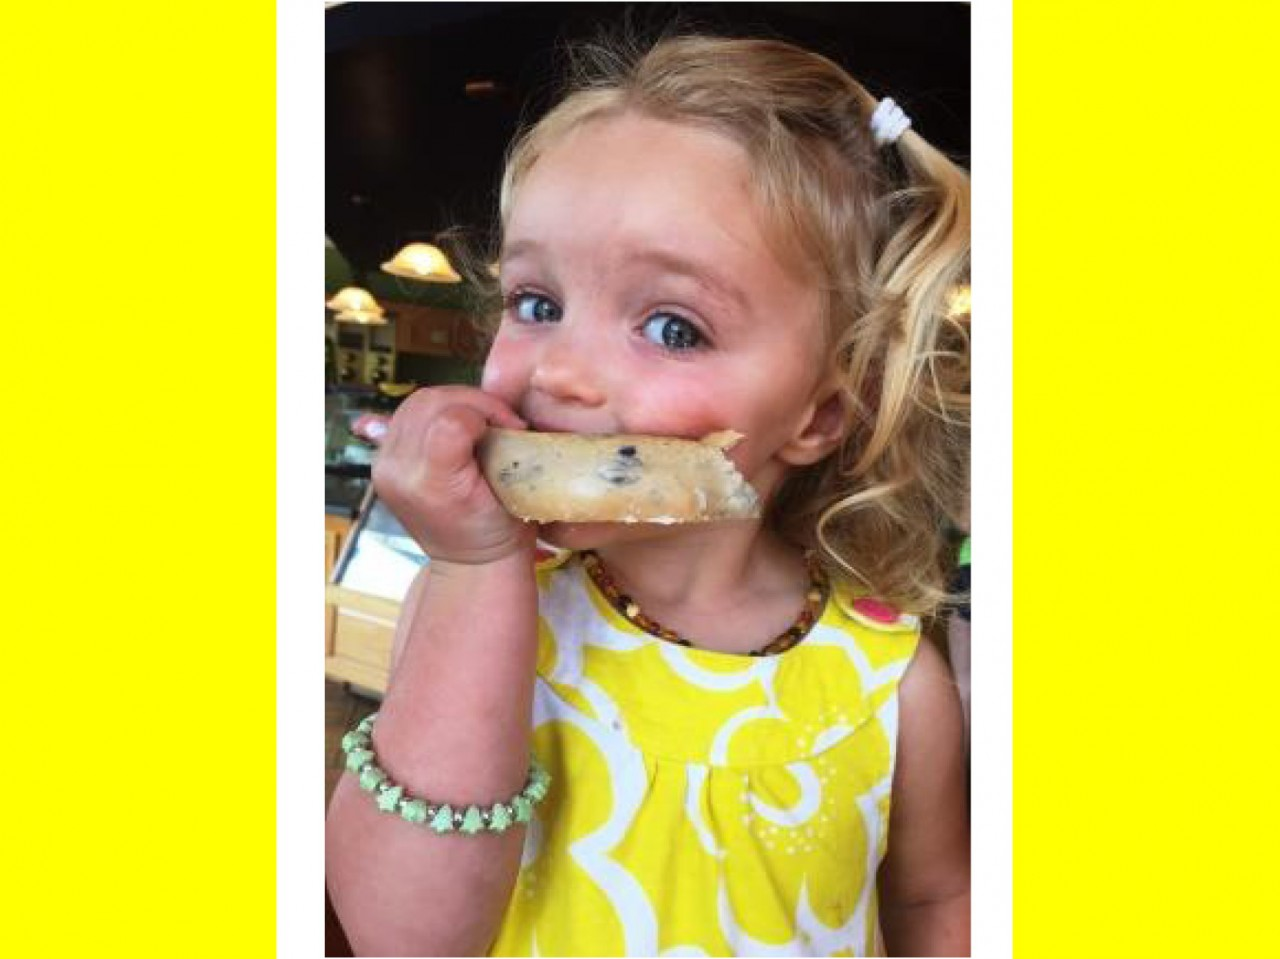 3 Options For Getting Your Picky Eater to Try Food This Summer